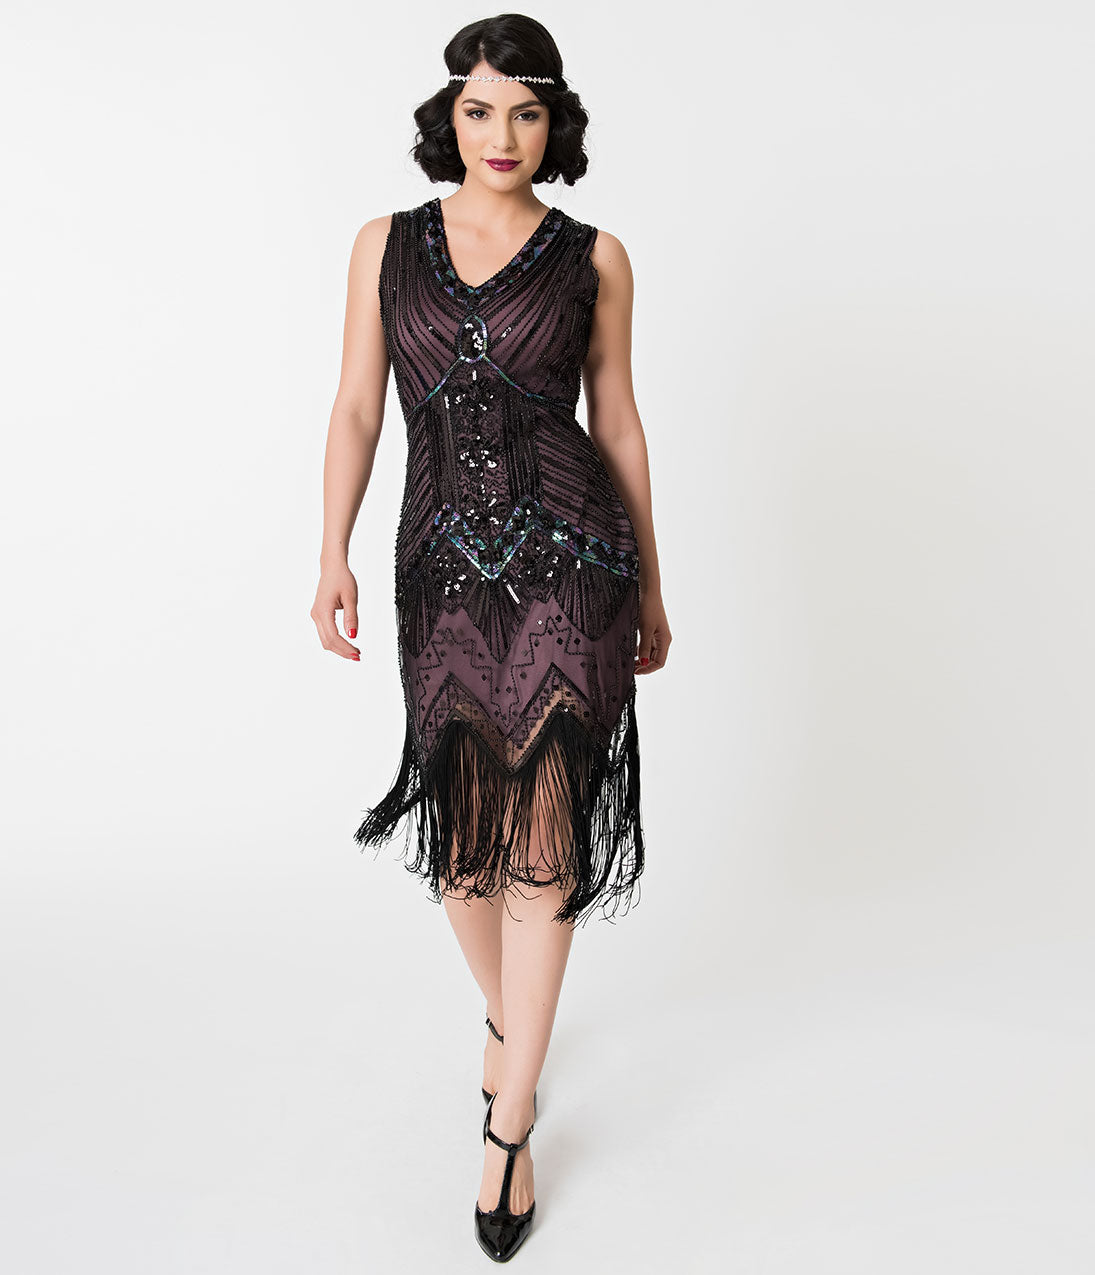 1920s Fashion & Clothing | Roaring 20s Attire Unique Vintage 1920S Deco Purple  Black Sequin Veronique Fringe Flapper Dress $98.00 AT vintagedancer.com